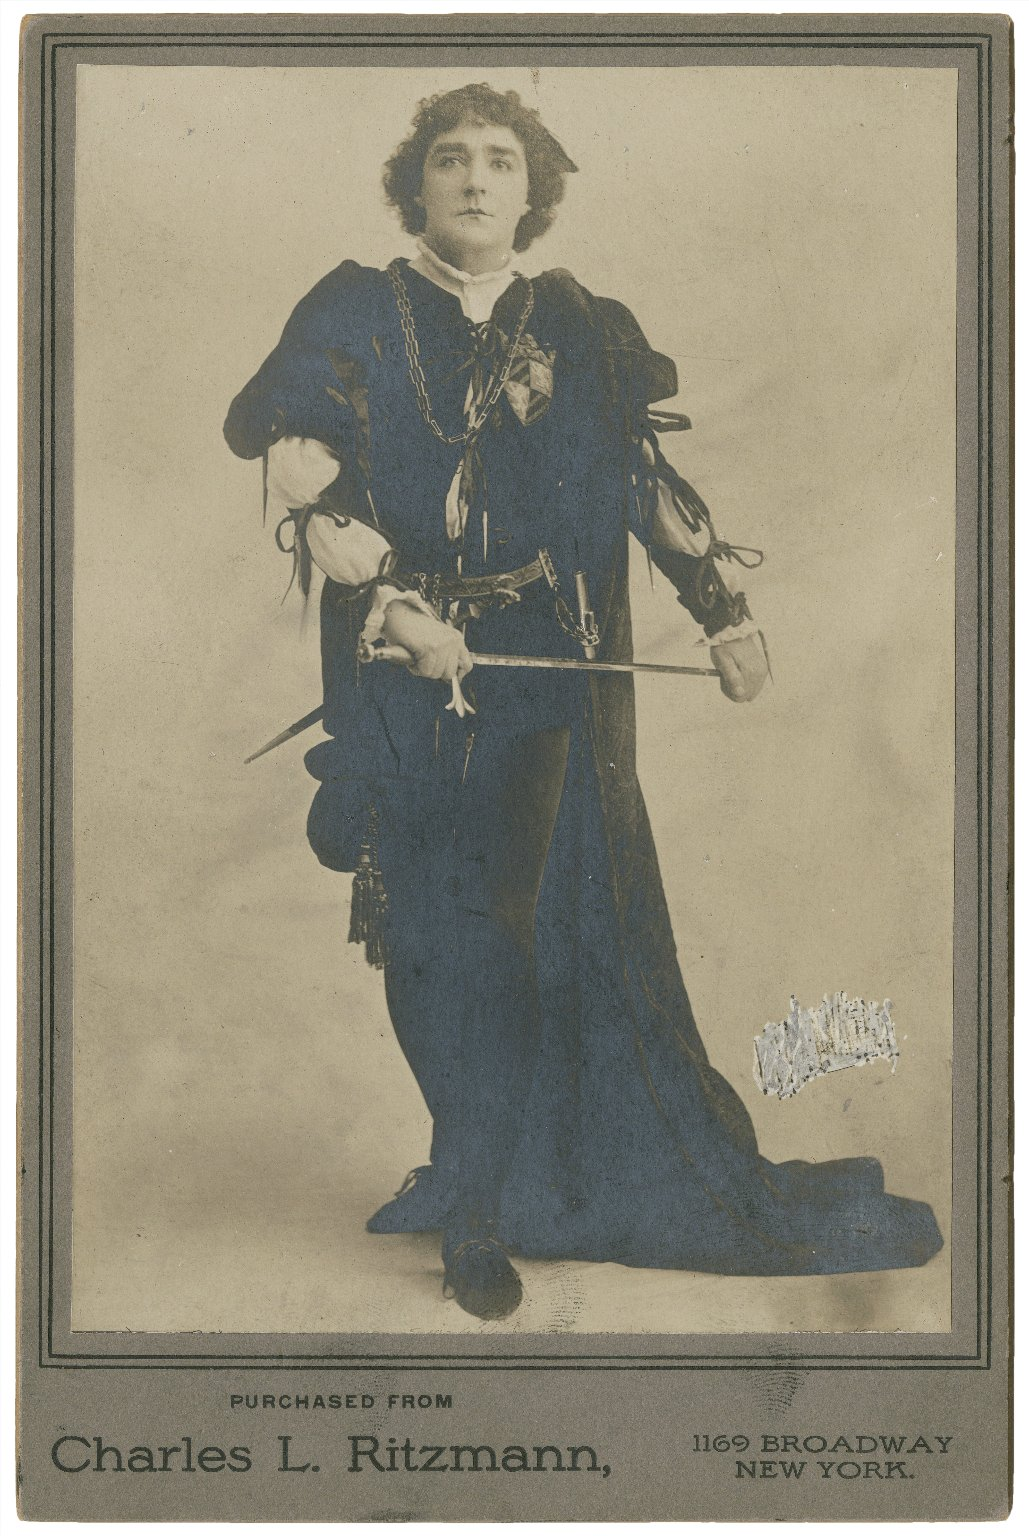 K. Bellew as Romeo [in Shakespeare's Romeo and Juliet] [graphic] / purchased from Charles L. Ritzmann.